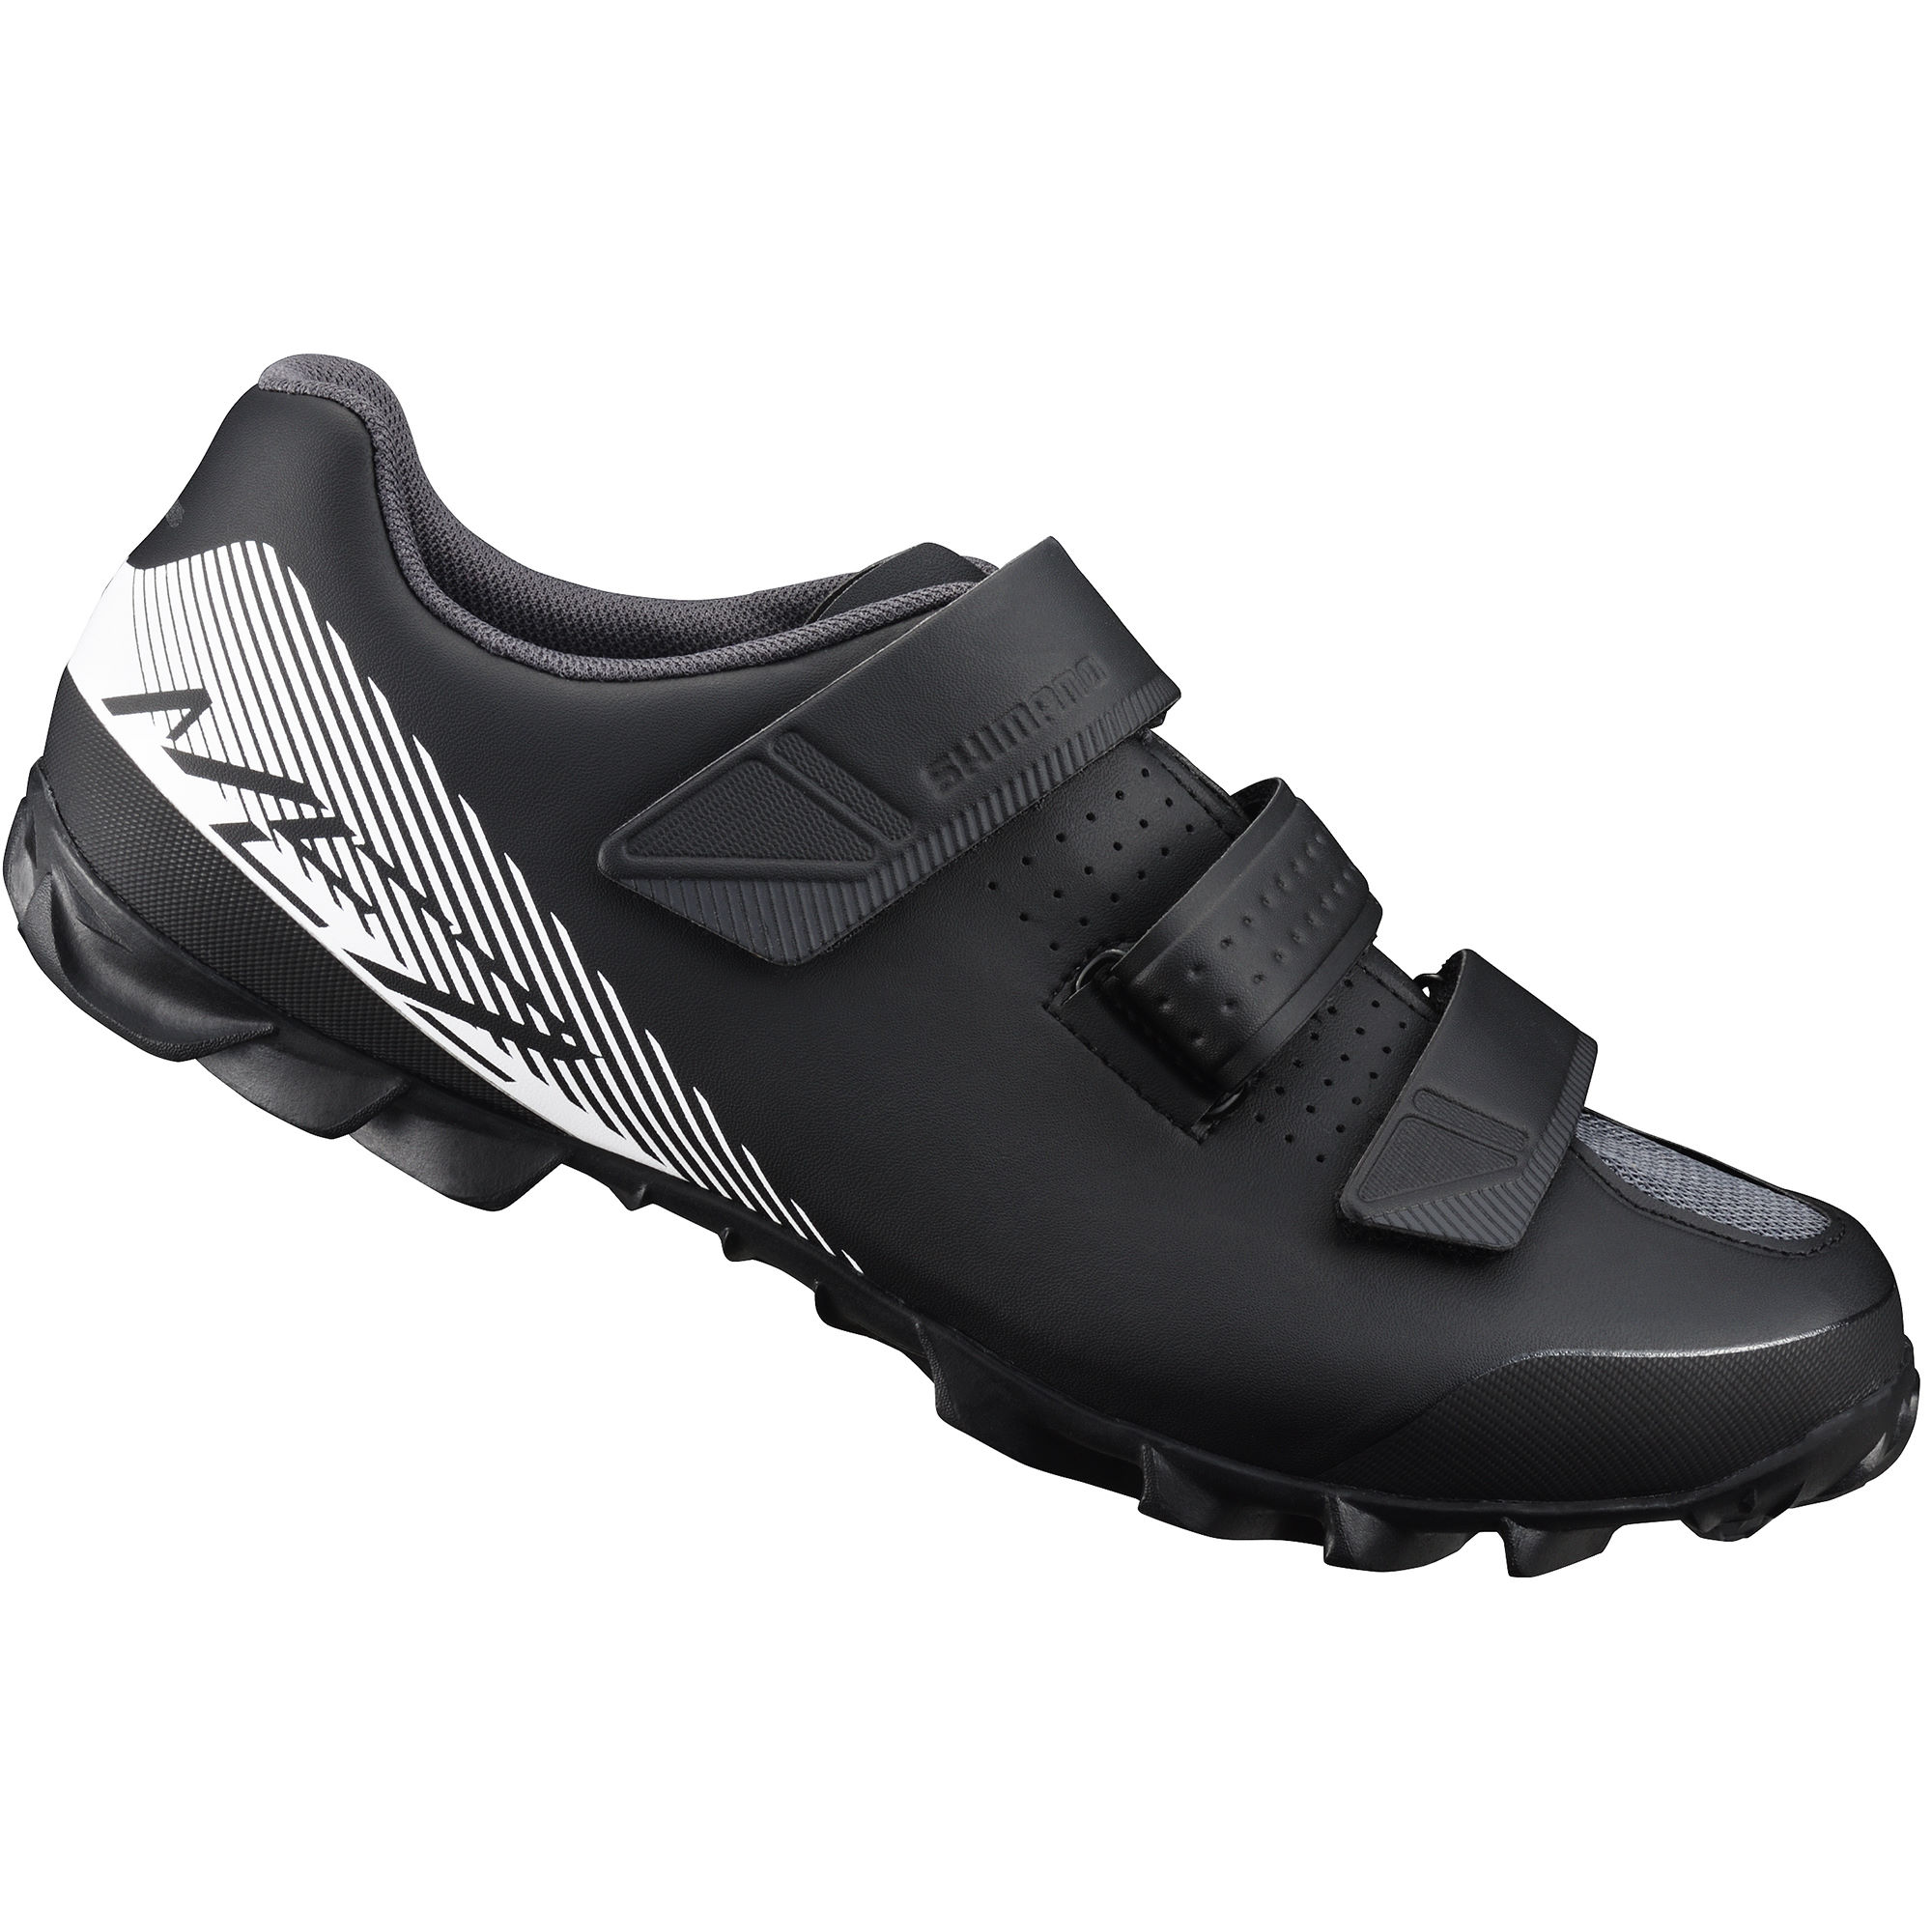 5de87fdc179 Shimano ME2 SPD Mountain Bike Shoes - 2018 | Merlin Cycles